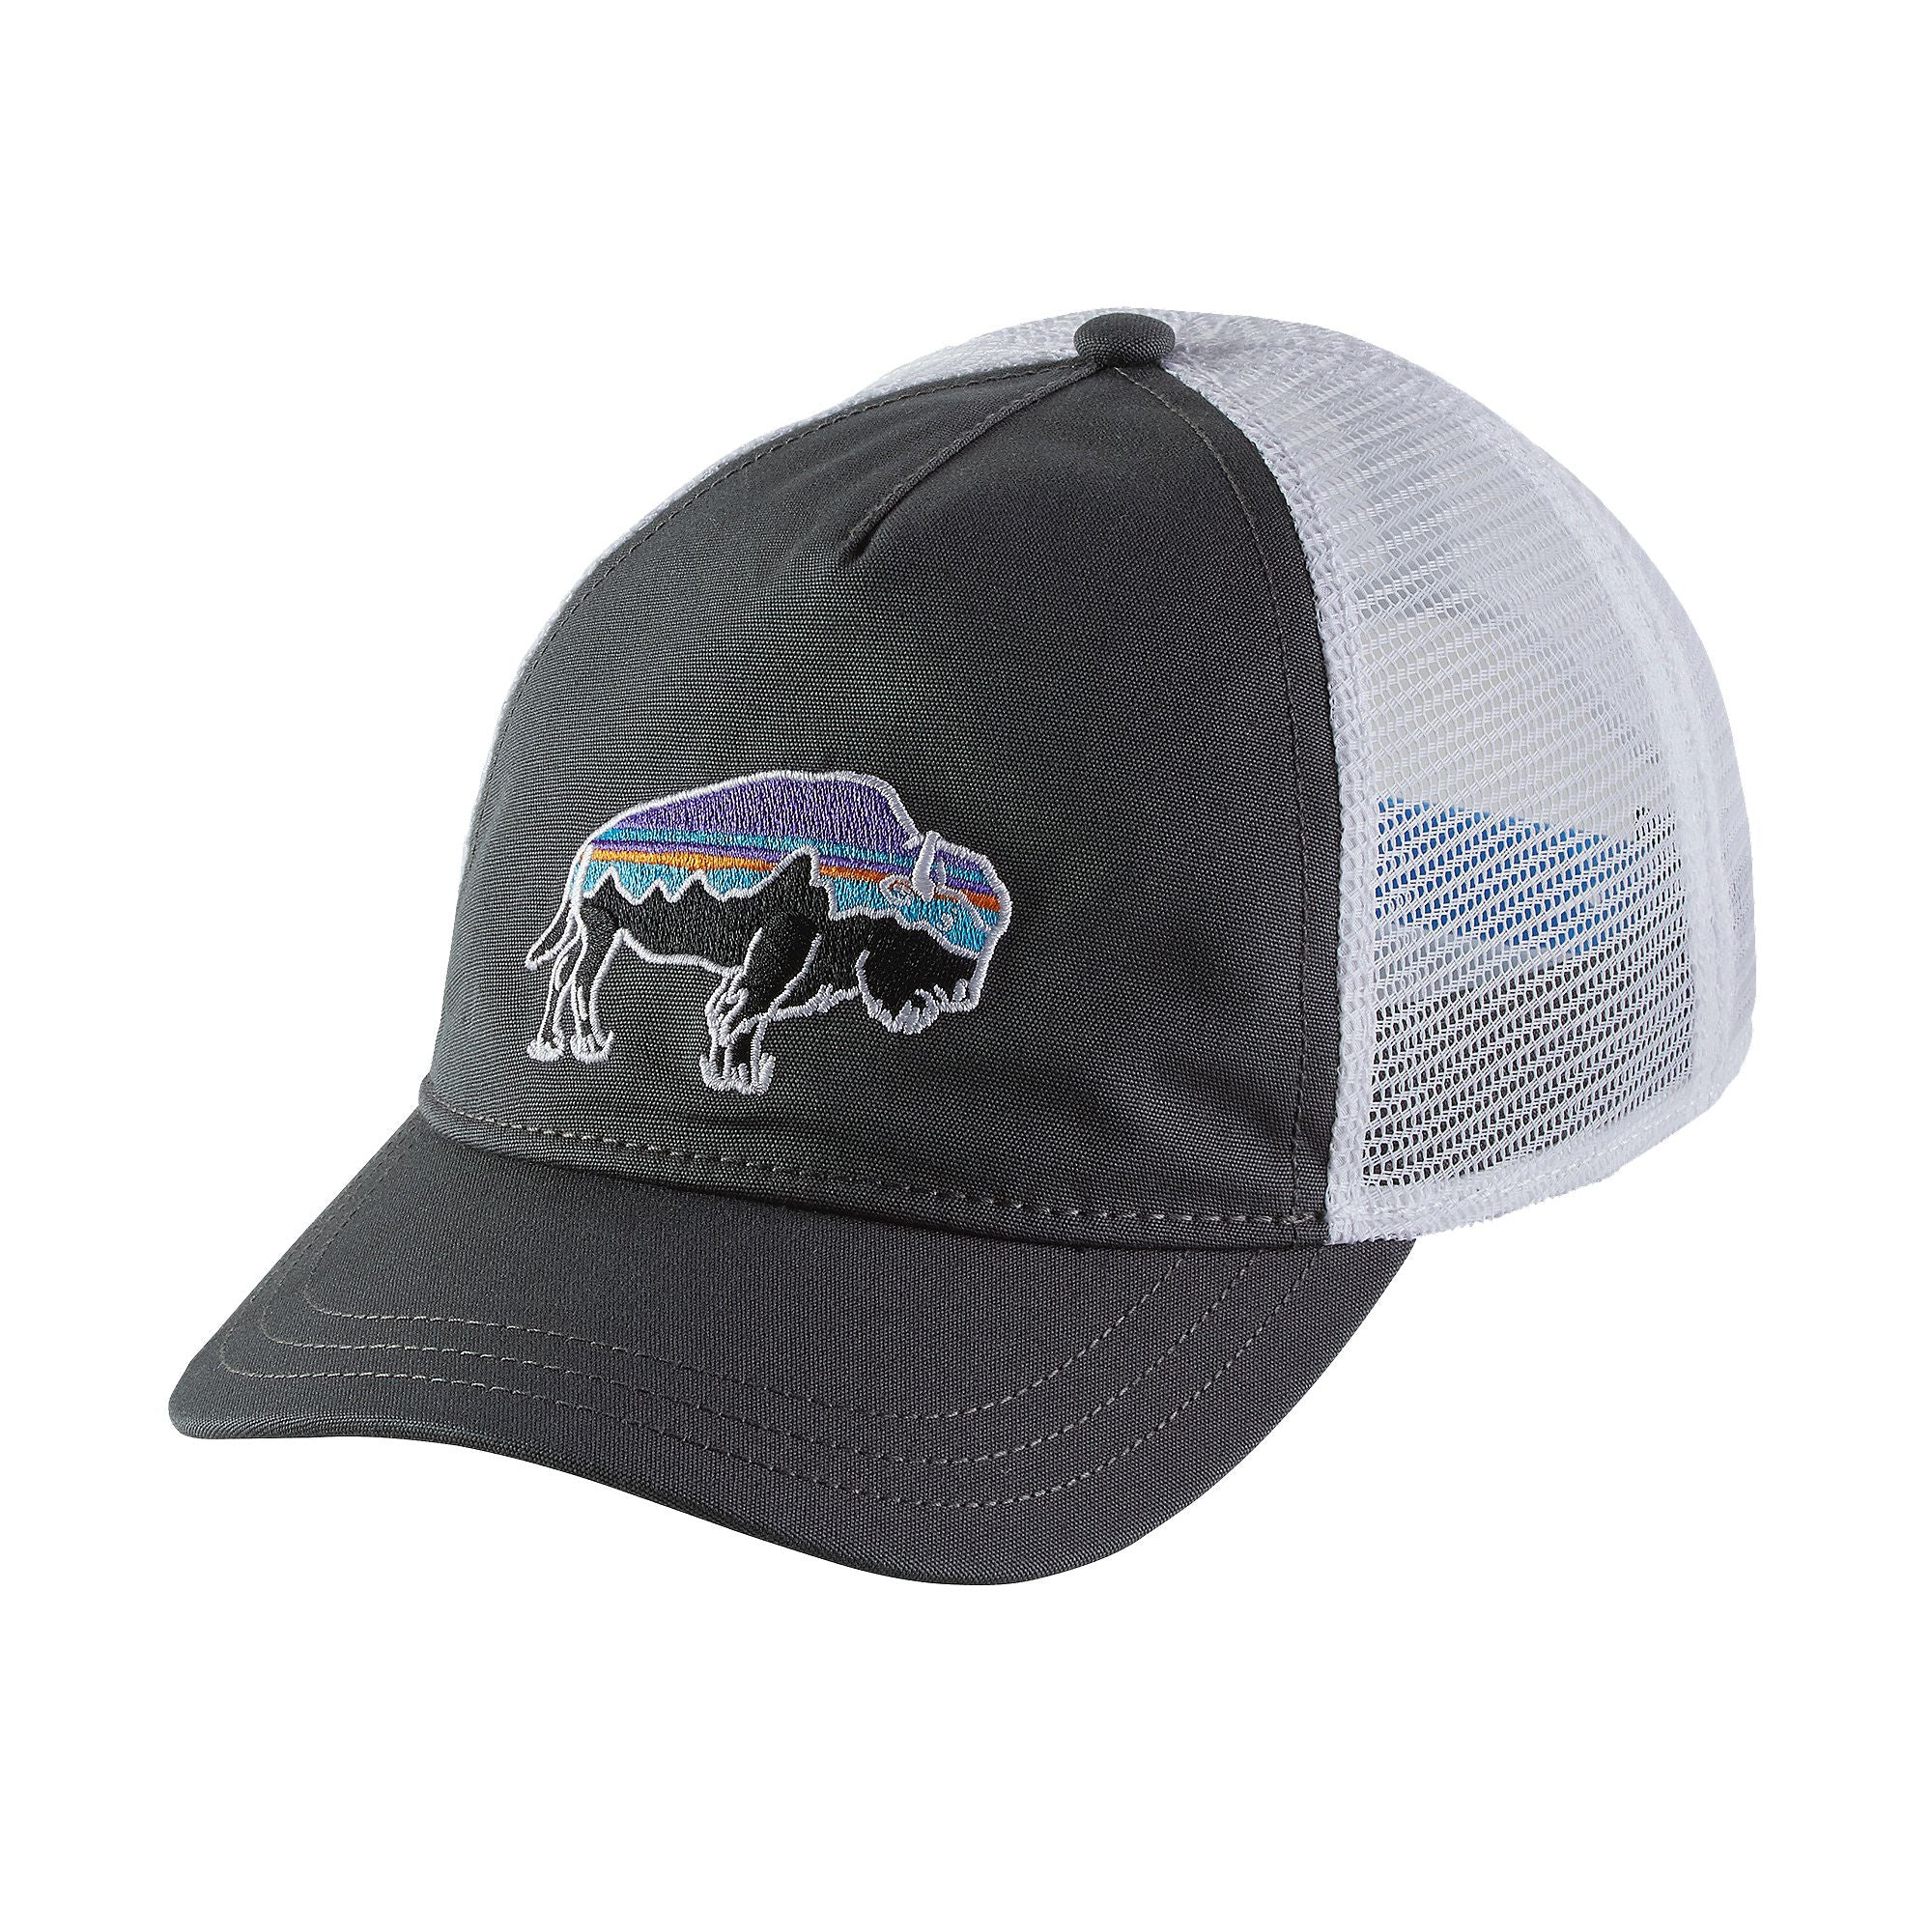 ab8a9f6f9a577 Patagonia Hat - Women s Fitz Roy Bison Layback Trucker